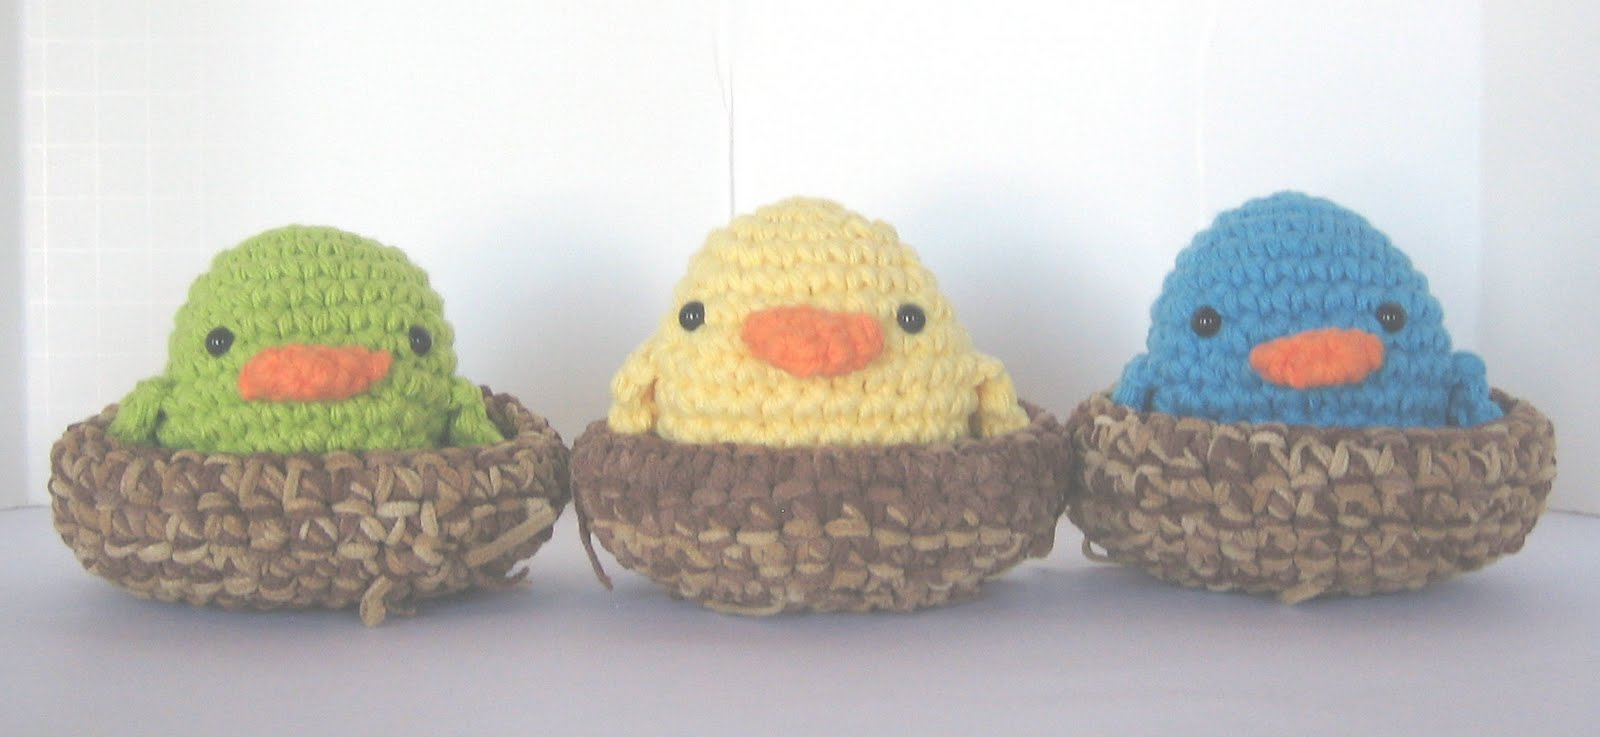 Crochet Patterns Easter : My favorite free crochet patterns: Easter Chicks